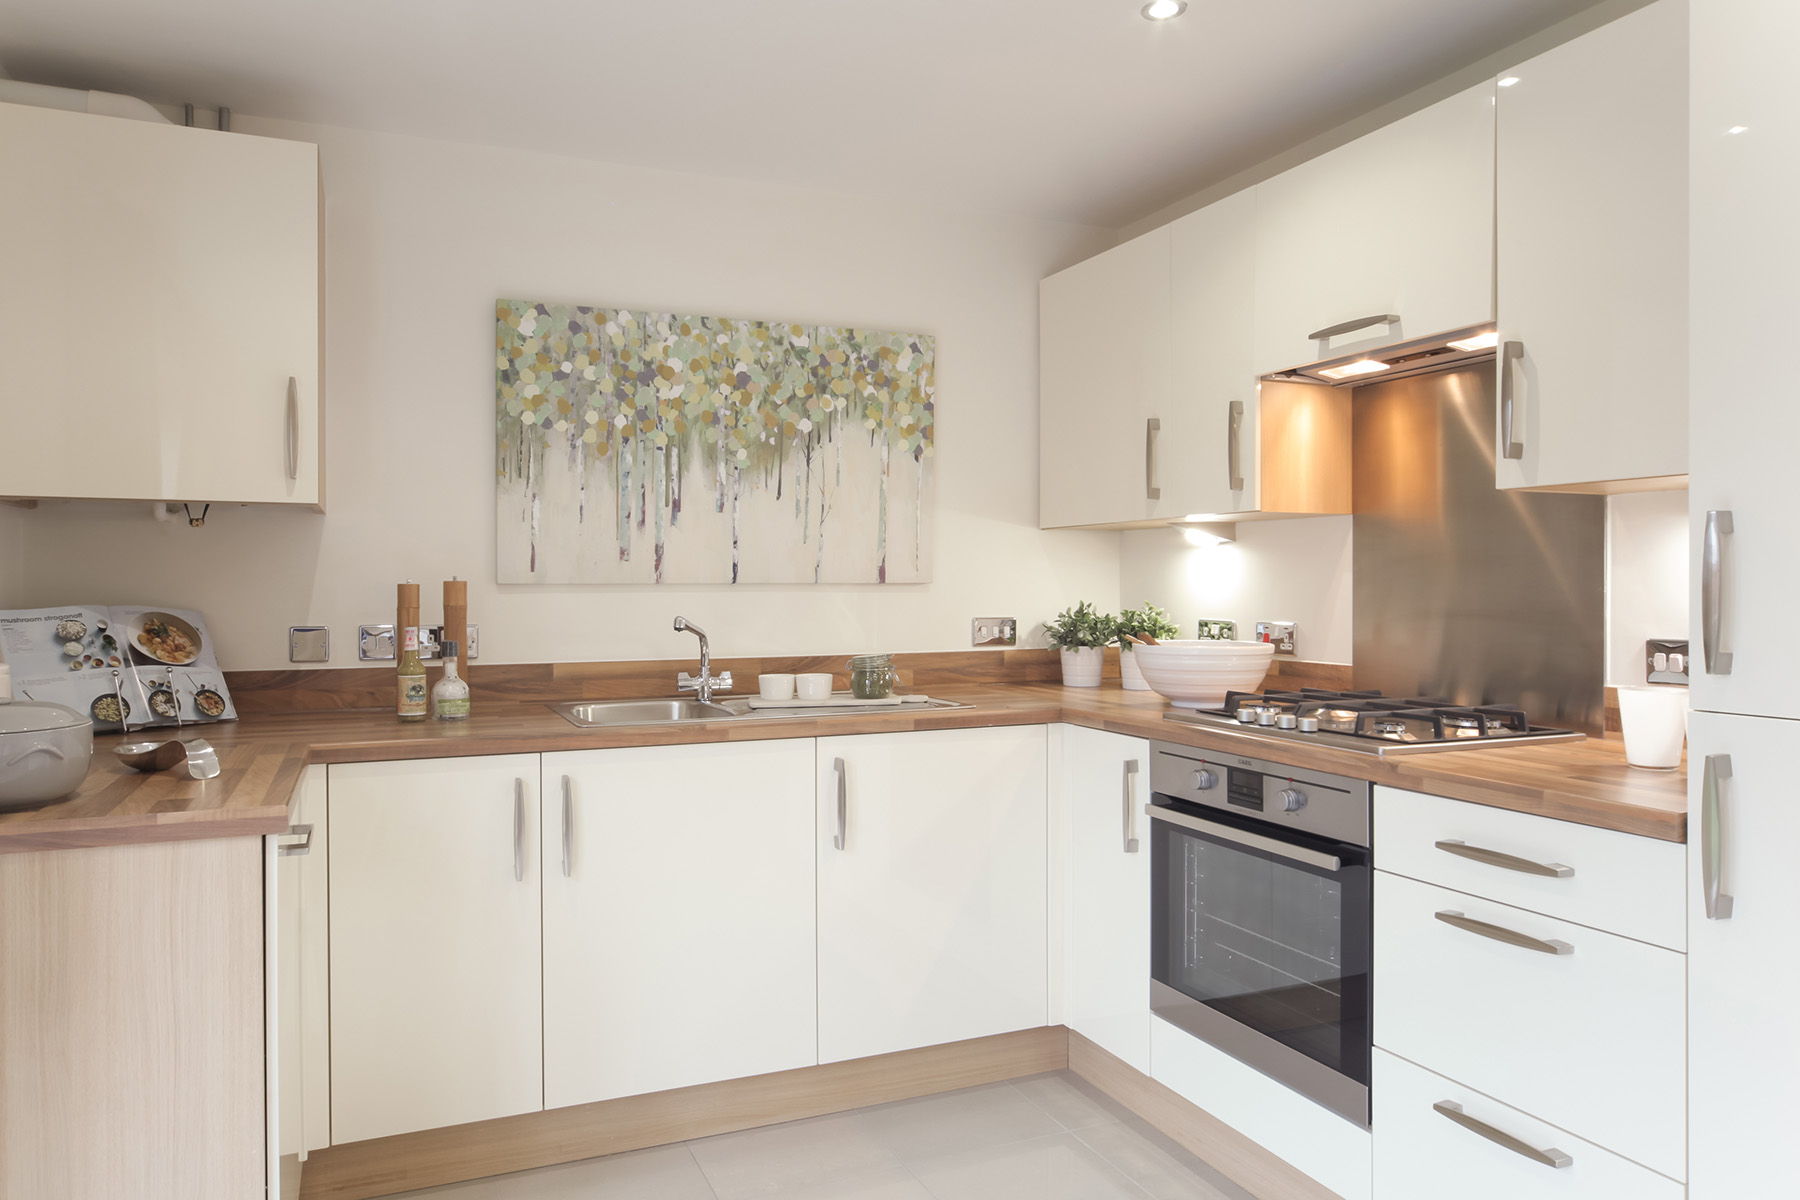 TW Exeter - Buckingham Heights - Gosford example kitchen